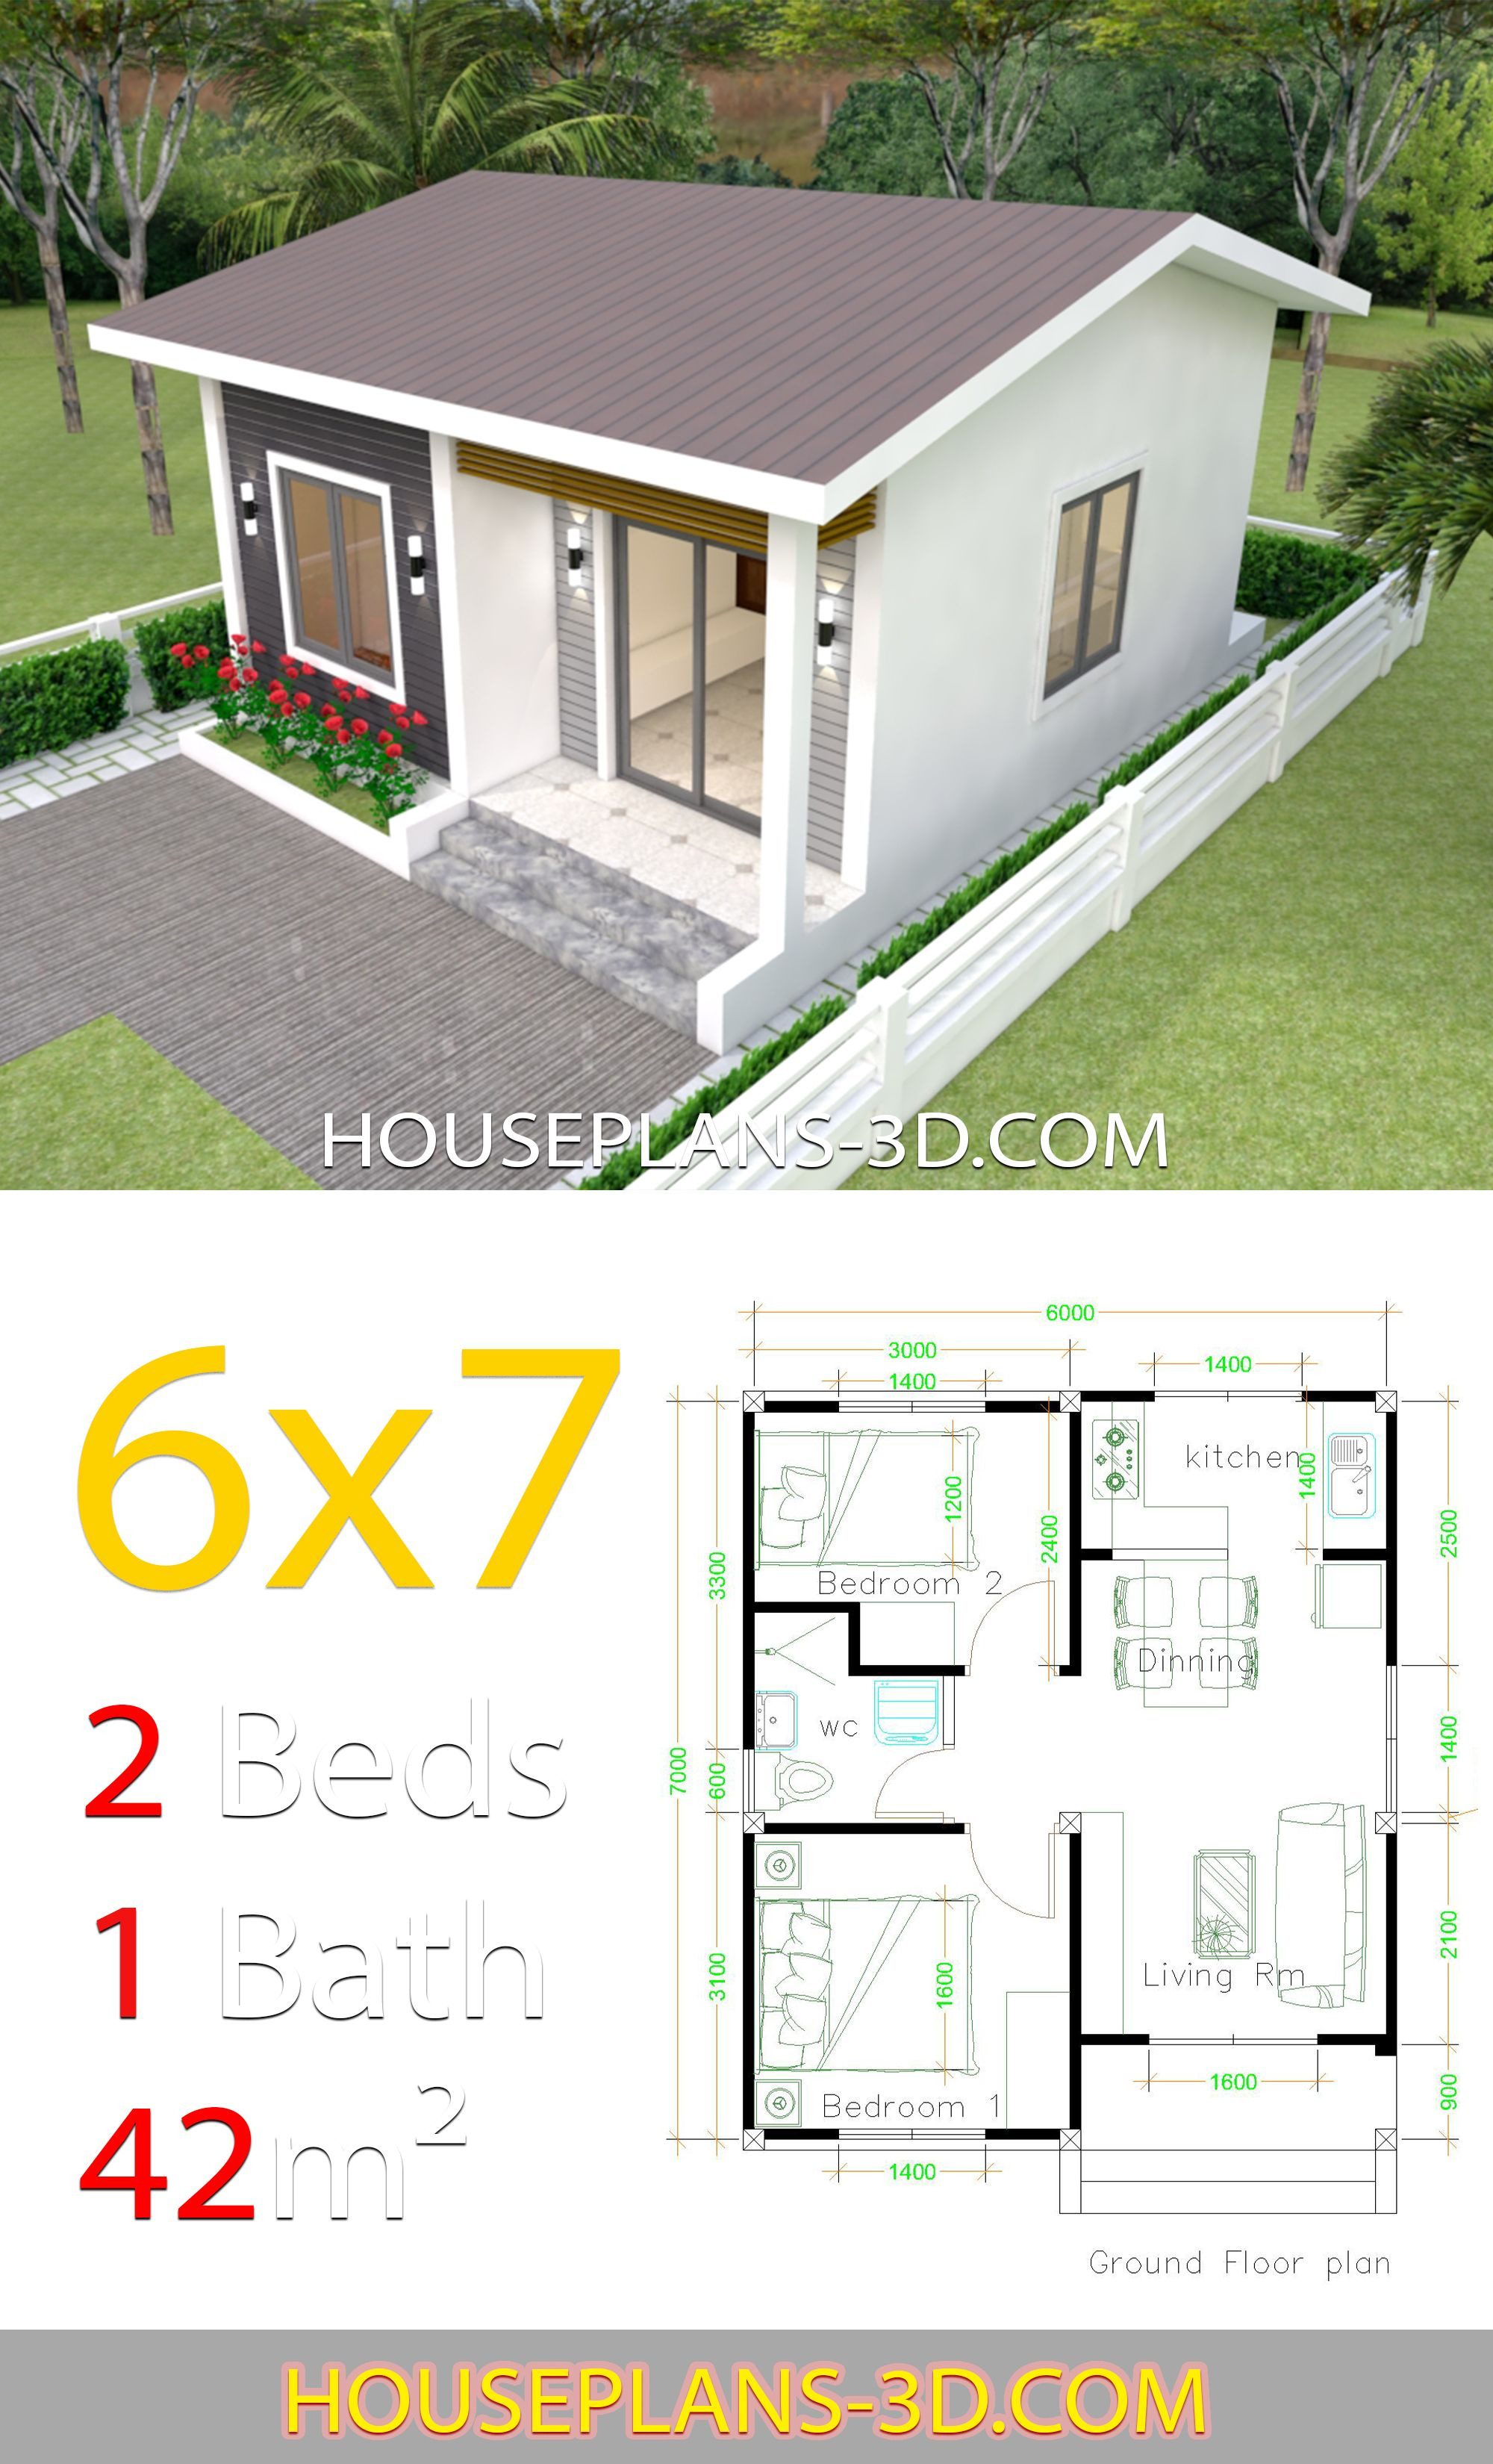 2400 Sq Ft House Plans 3d Best Of House Design 6x7 with 2 Bedrooms House Plans 3d